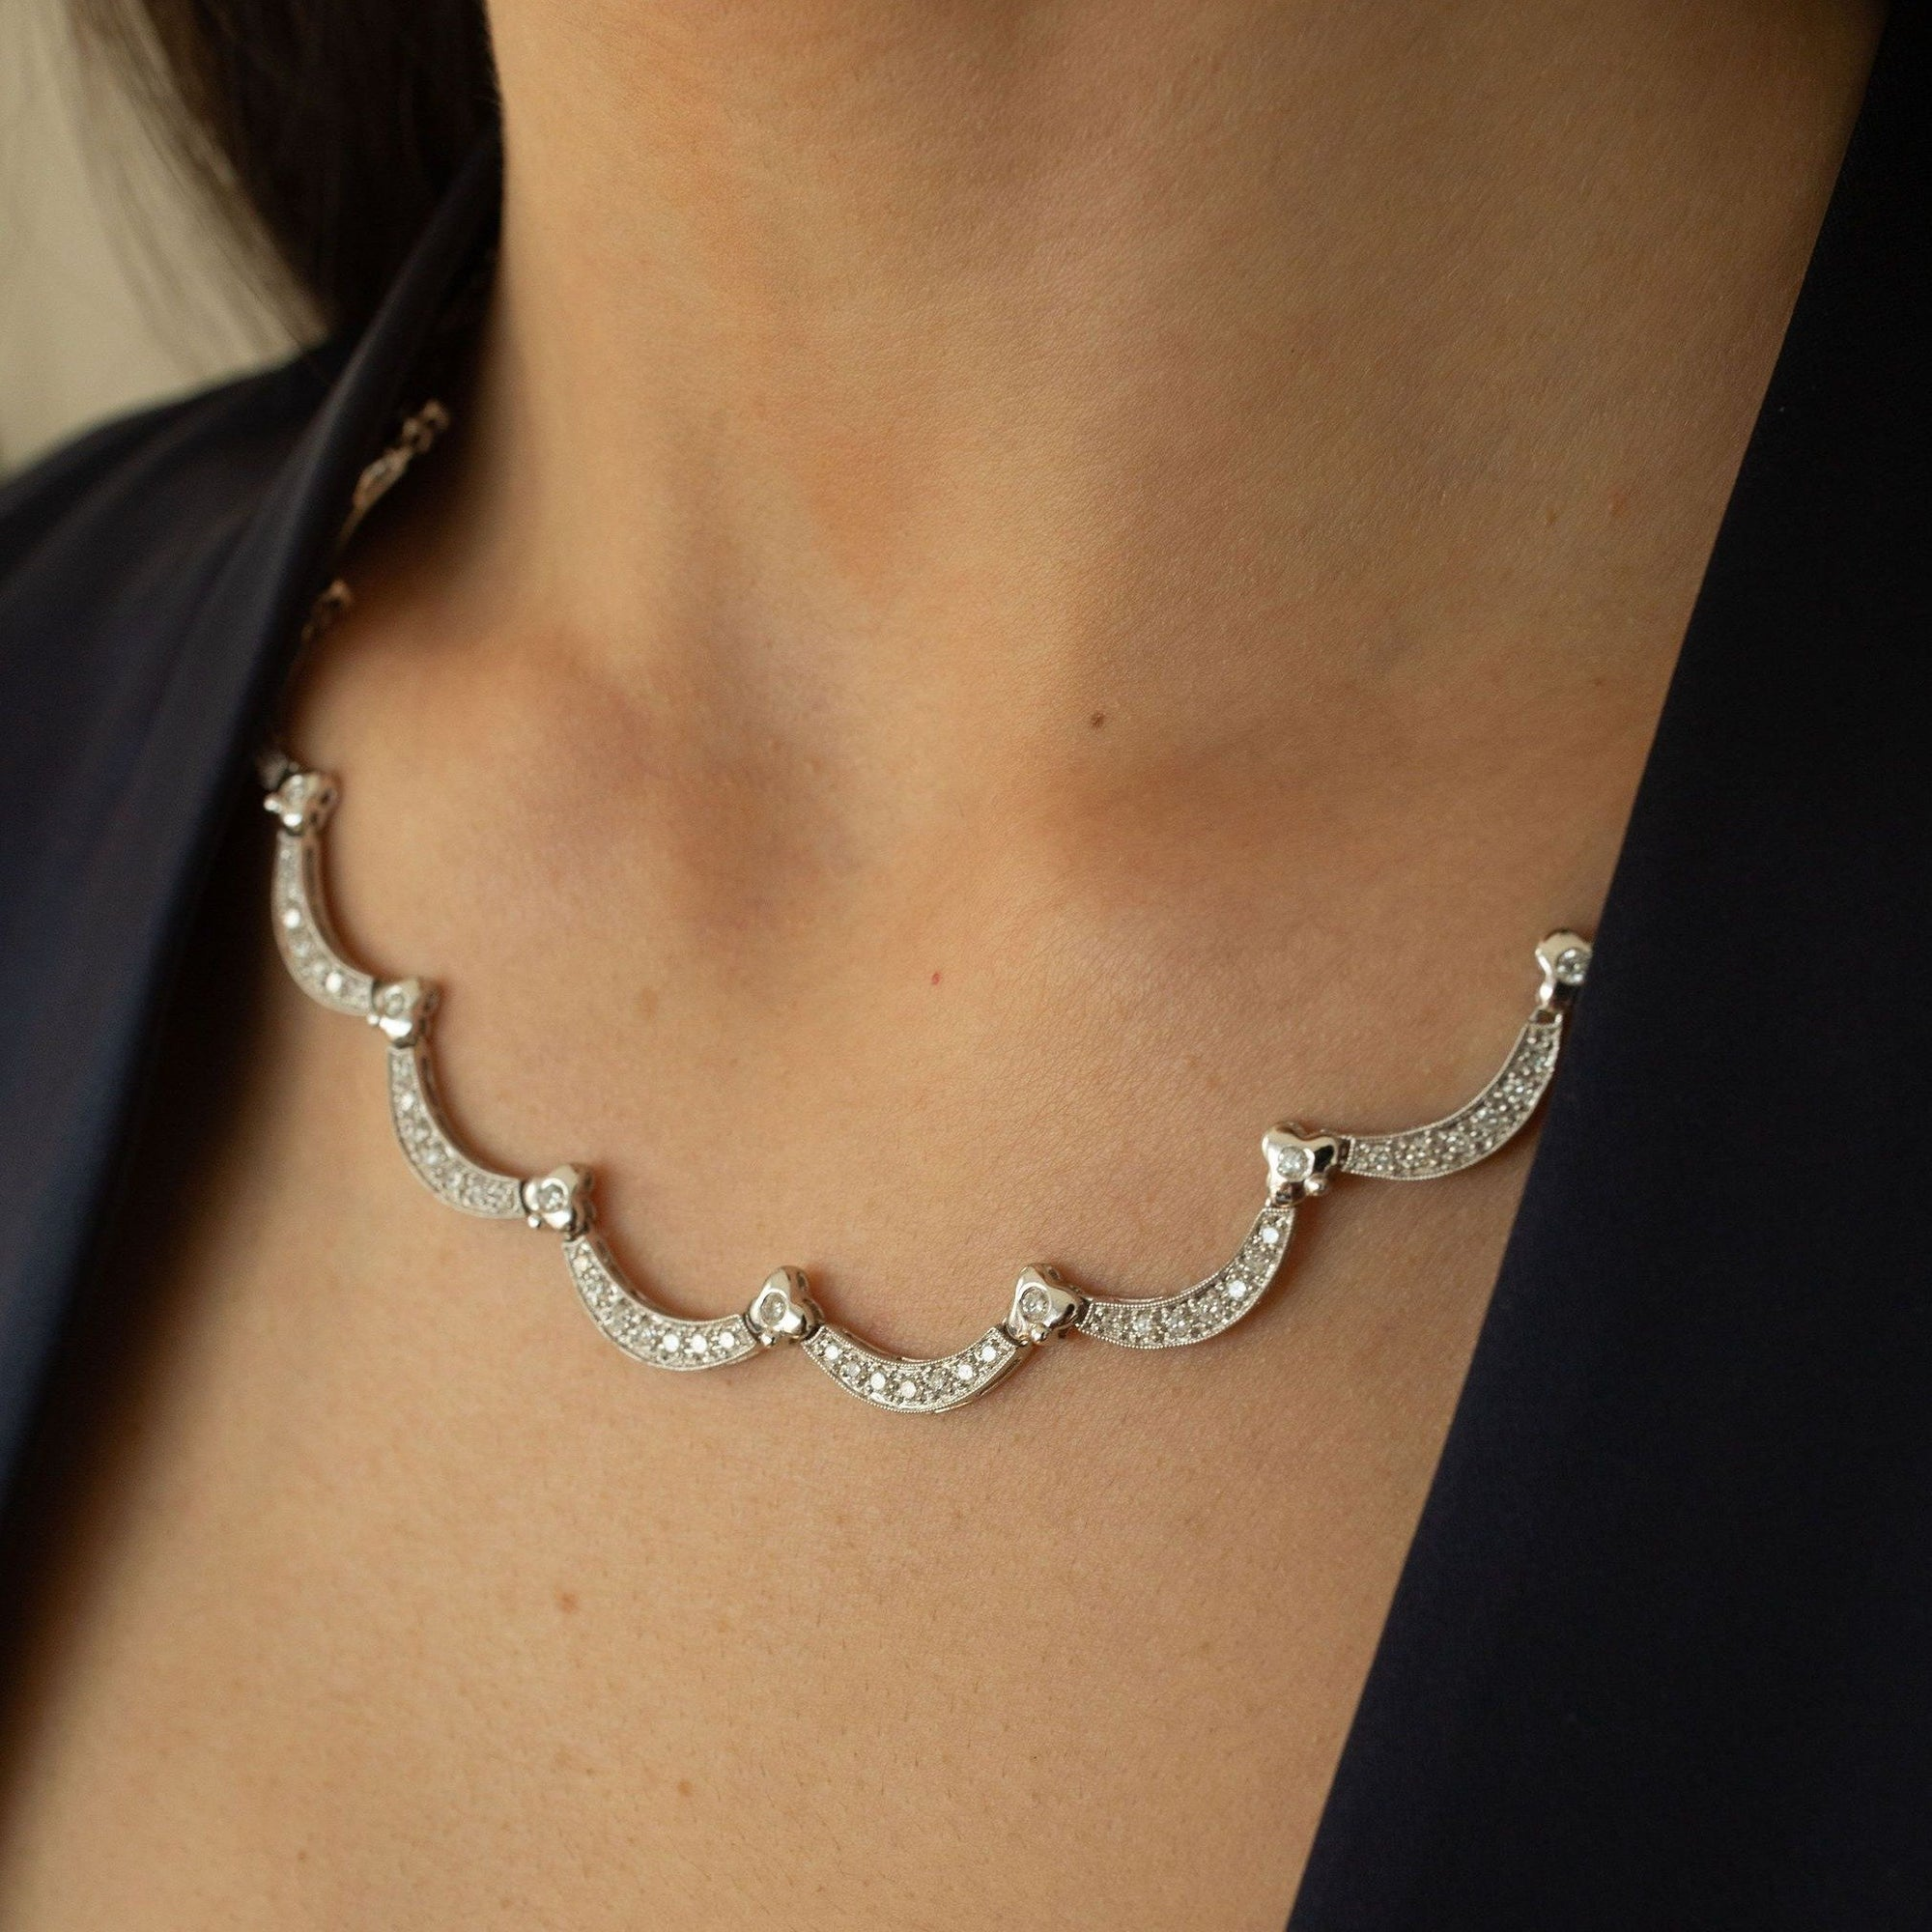 Vintage Scalloped White Gold and Diamond Eternity Necklace by Fewer FIner